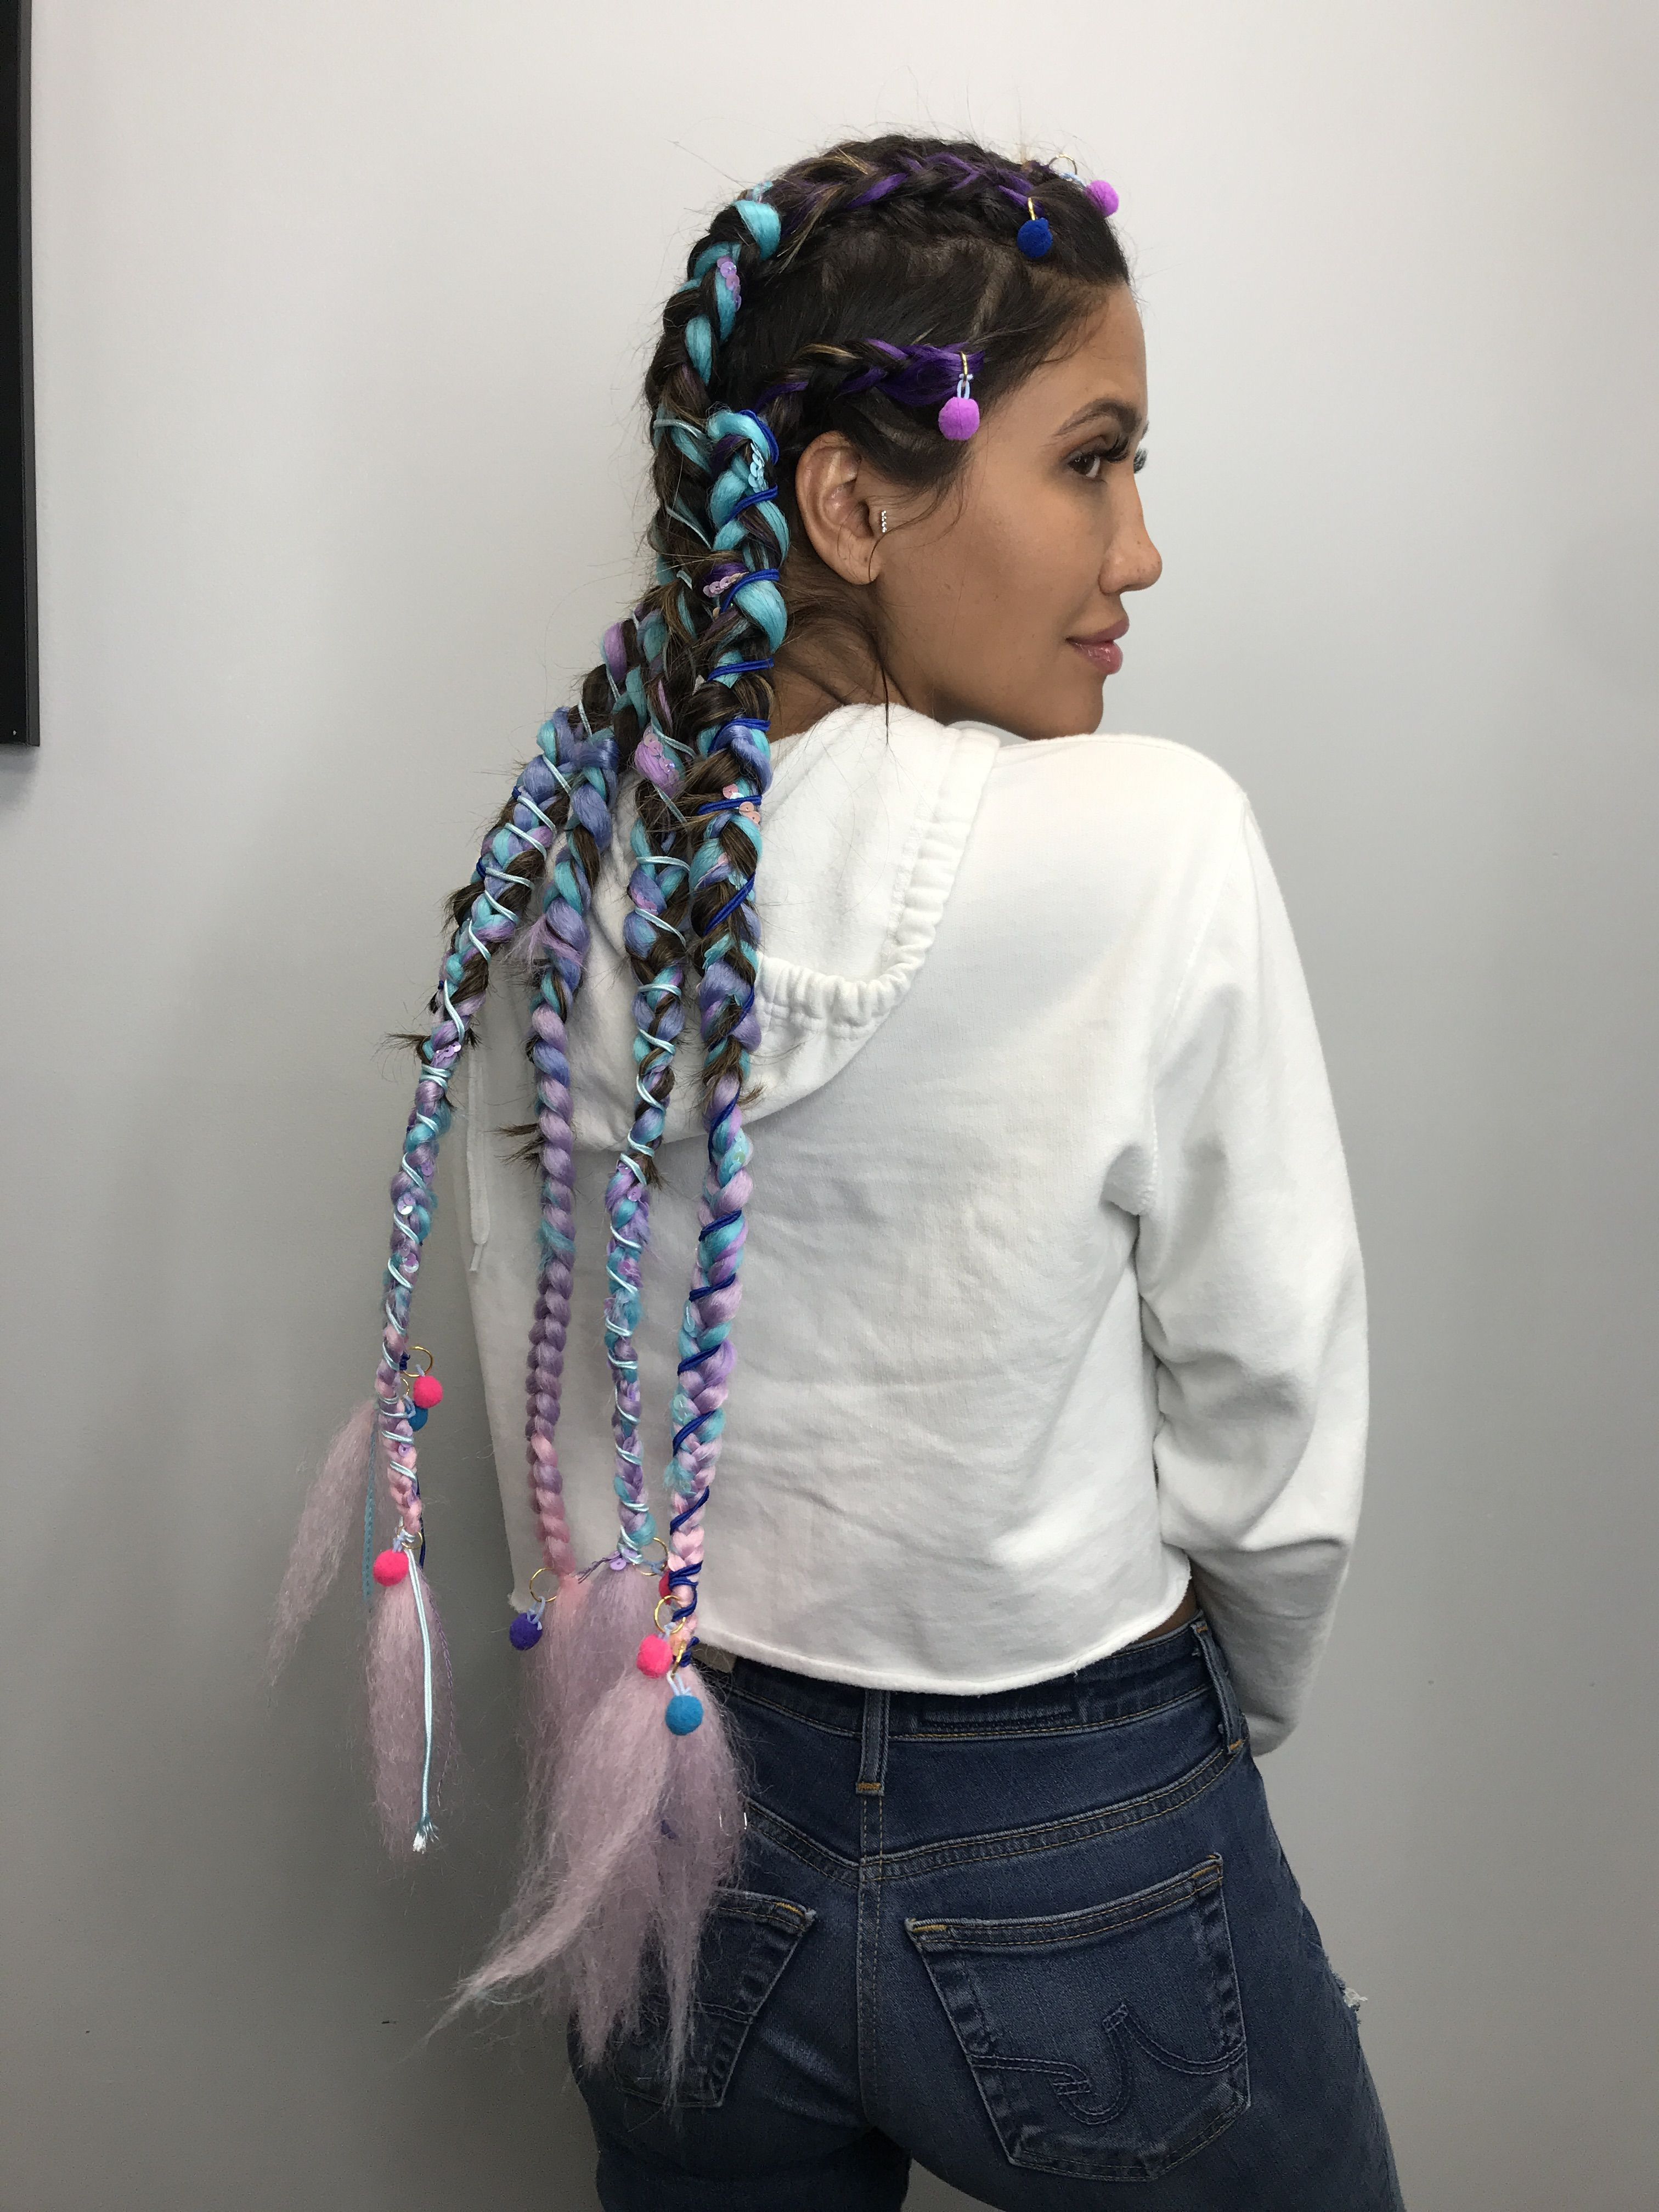 Festival Coachella Hair Pink Blue Pom Pom Braidstatiana Throughout Most Up To Date Blue Braided Festival Hairstyles (Gallery 11 of 20)